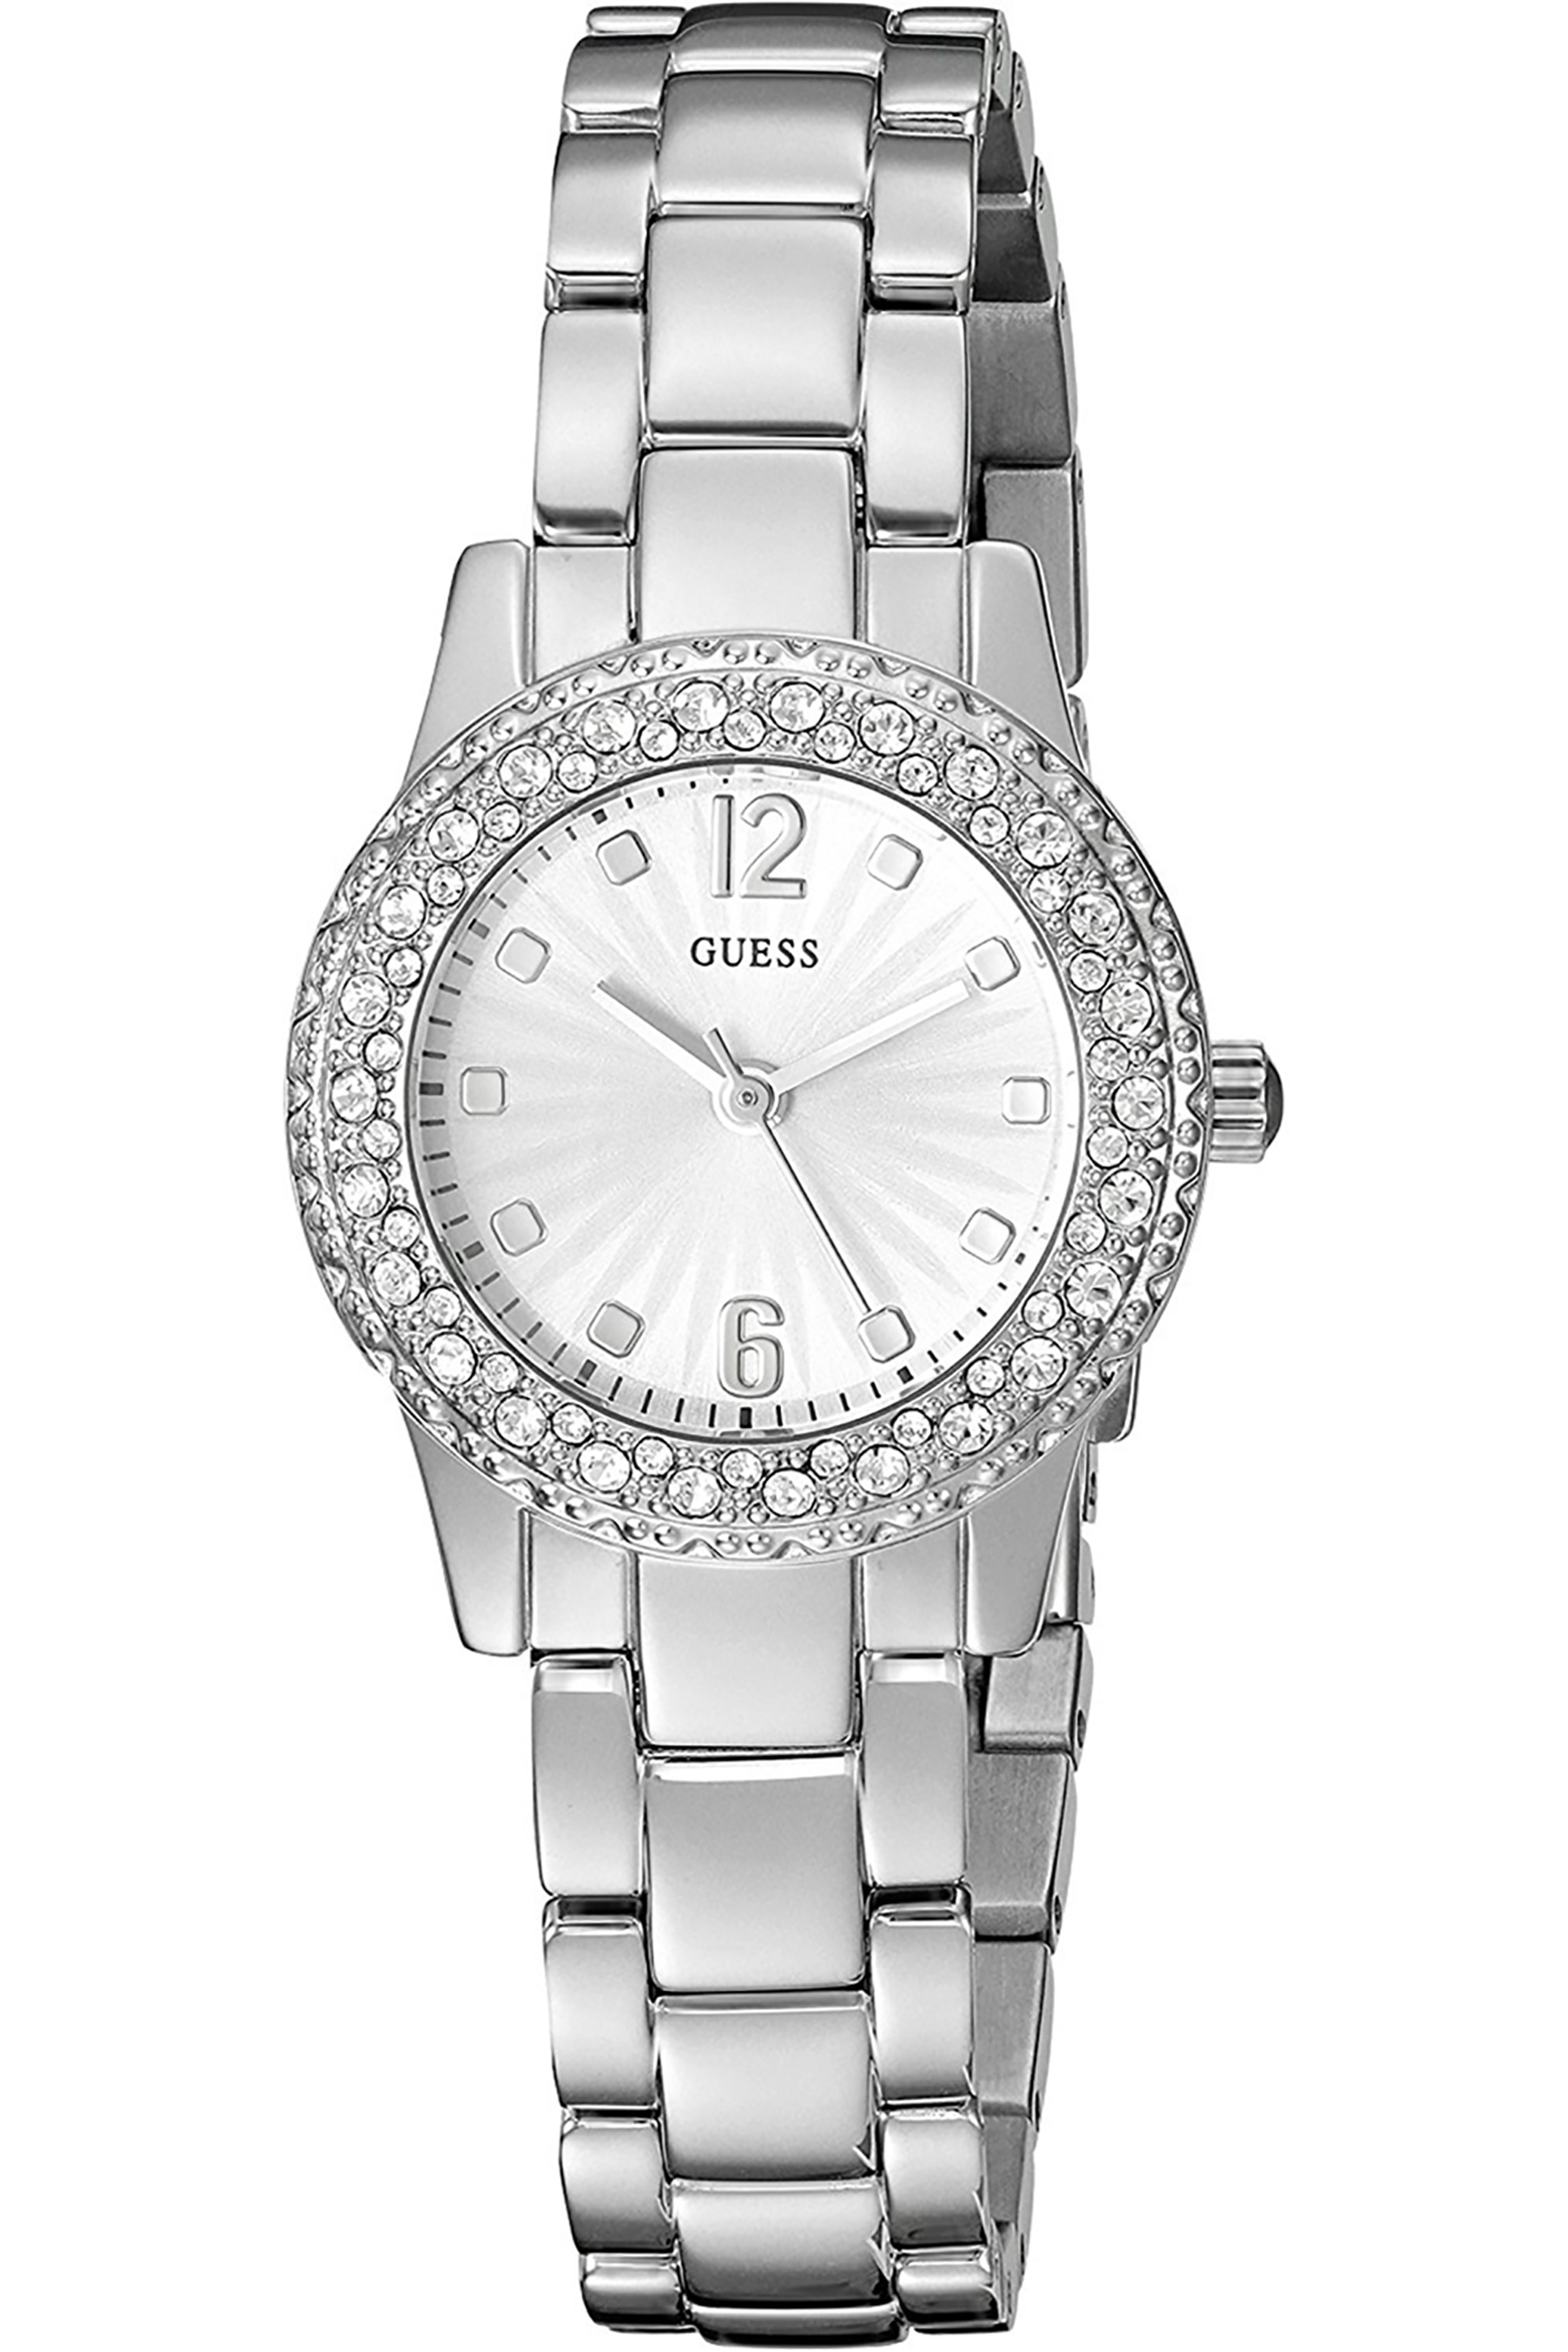 W0889L1,Ladies Dress,Stainless Steel,Silver Tone,Crystal Accented Bezel,30m WR